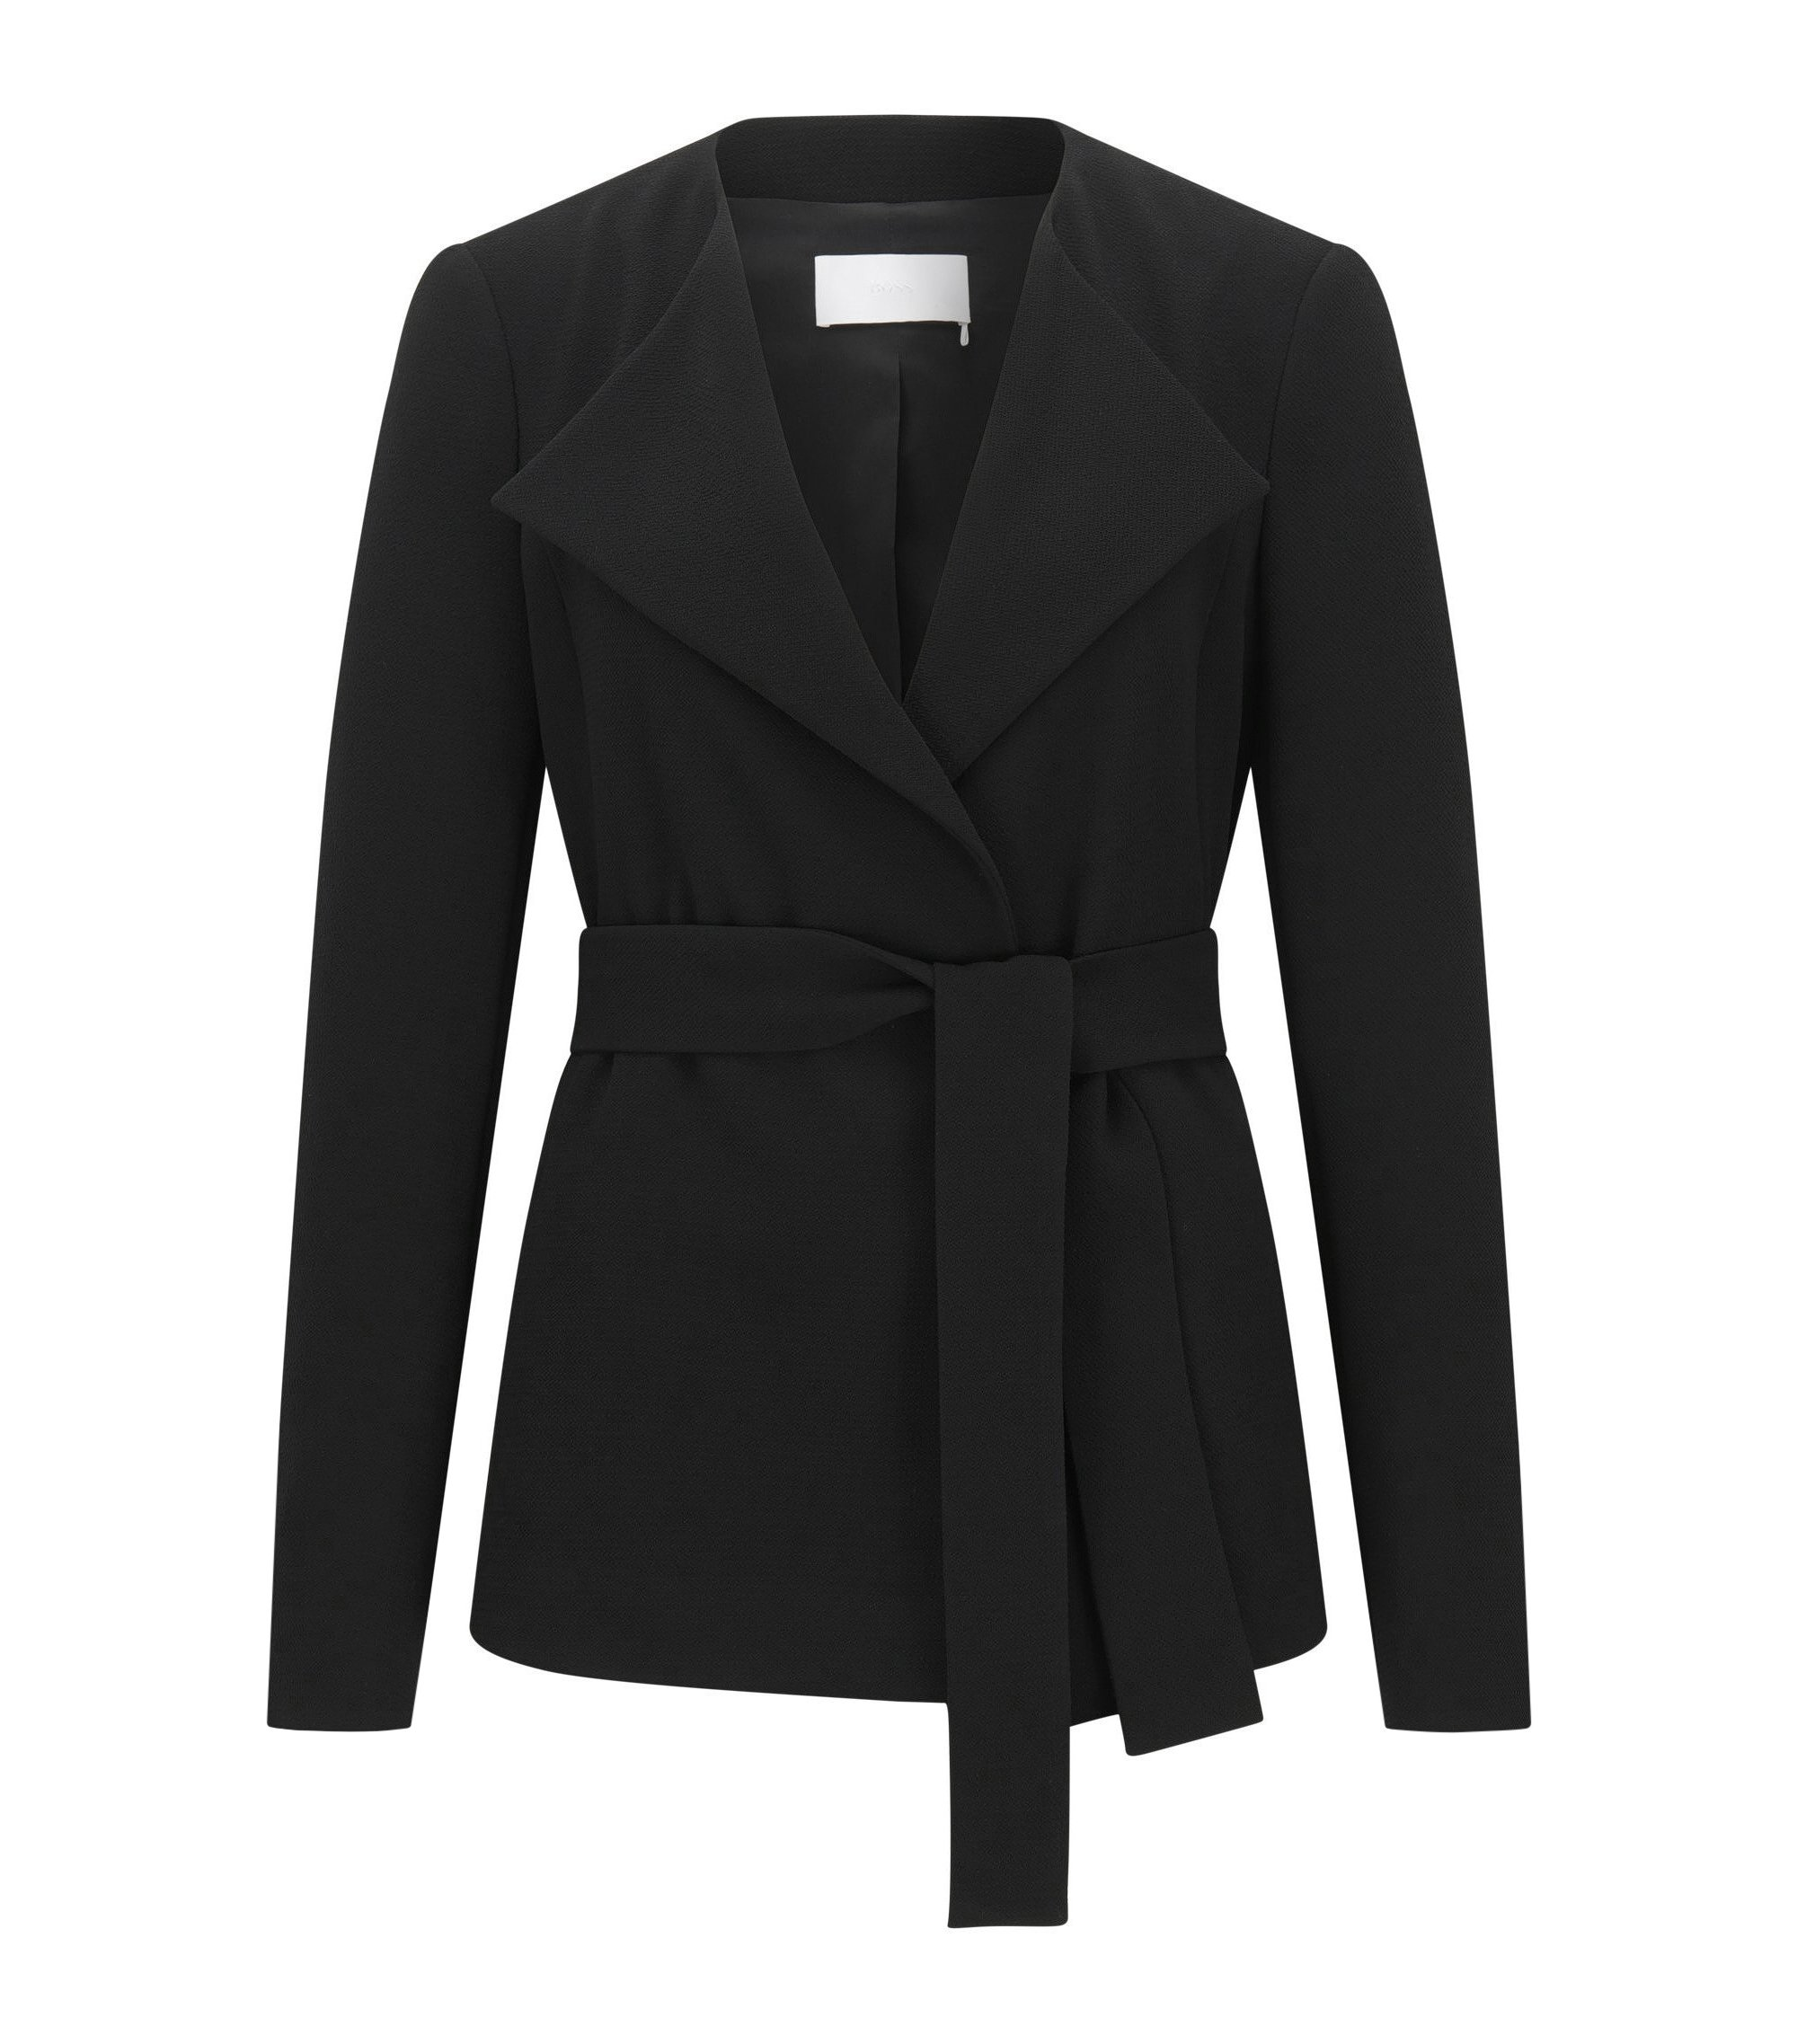 Self-Tie Woven Jacket | Karelina, Black